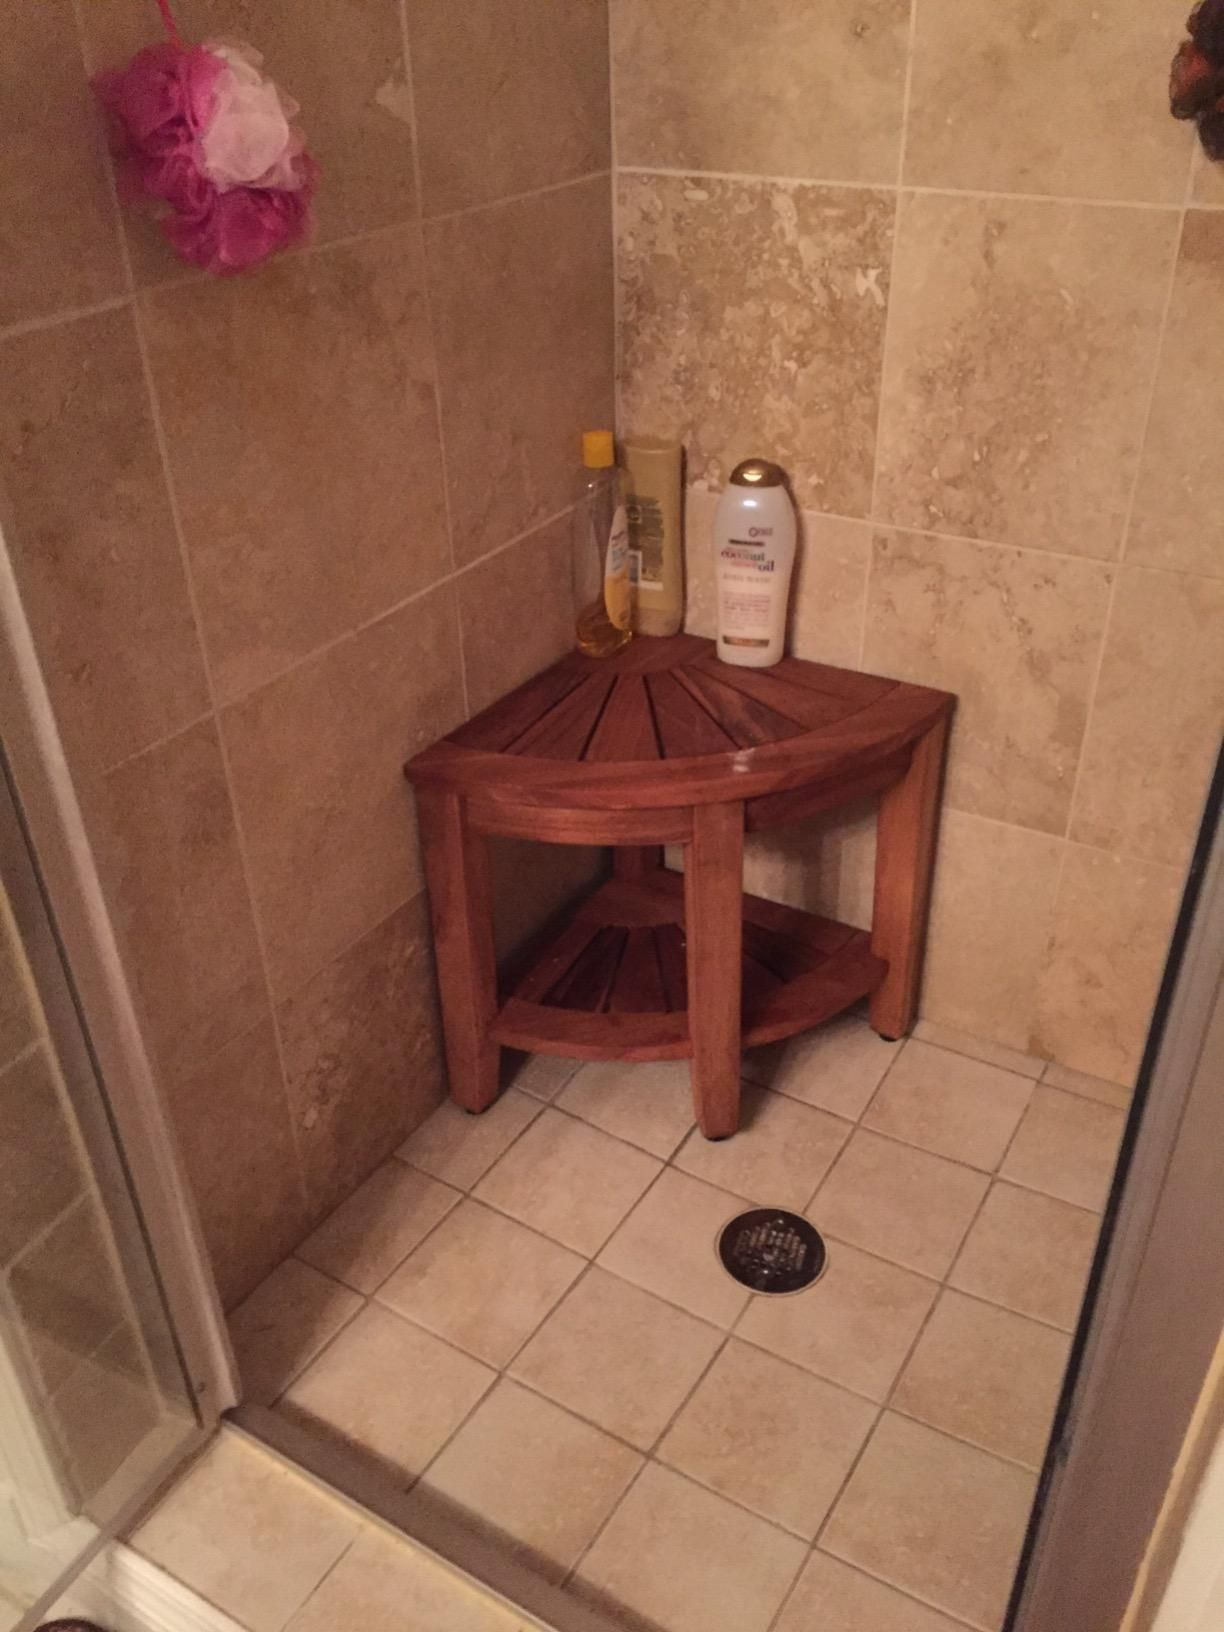 Best Shower Chair Reviews In 2020 Shower Bench Shower Chair Rustic Shower